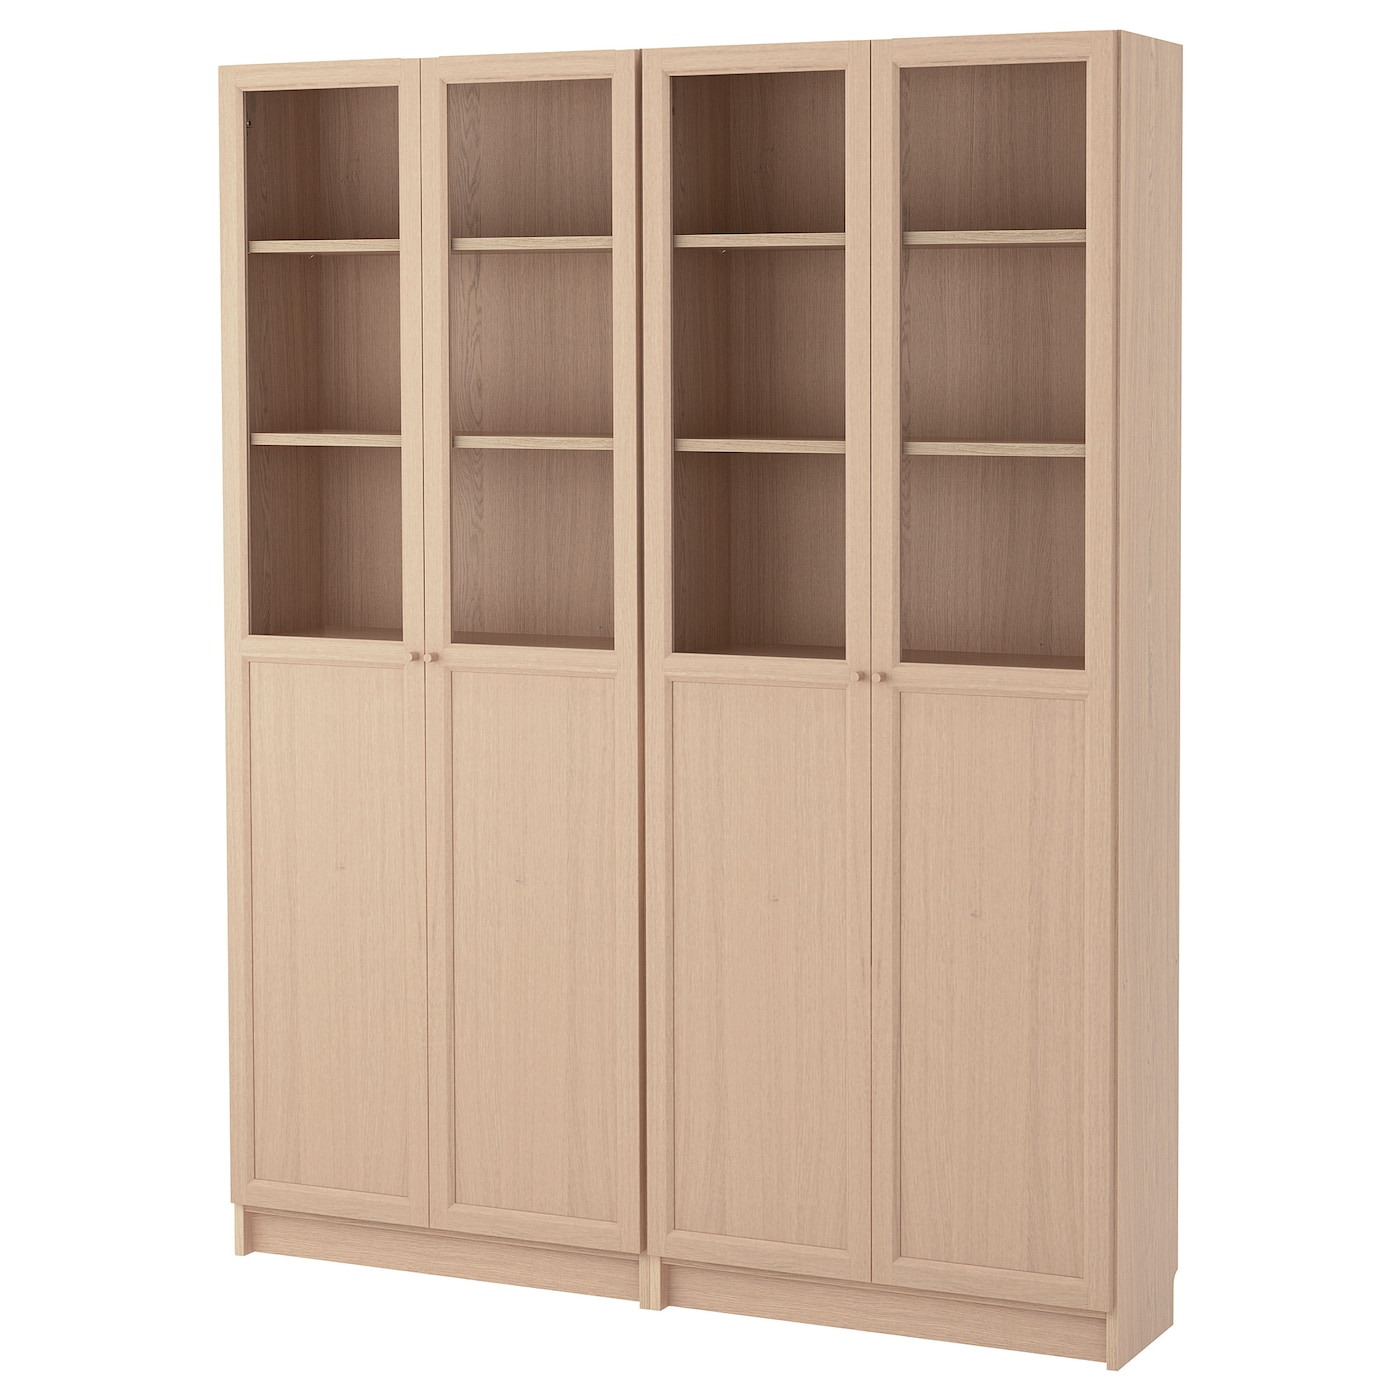 ideas glass white corner large sale furniture enclosed bookshelves horizontal high with bookshelf wide doors small bookcases for bookcase wooden inch big narrow tall